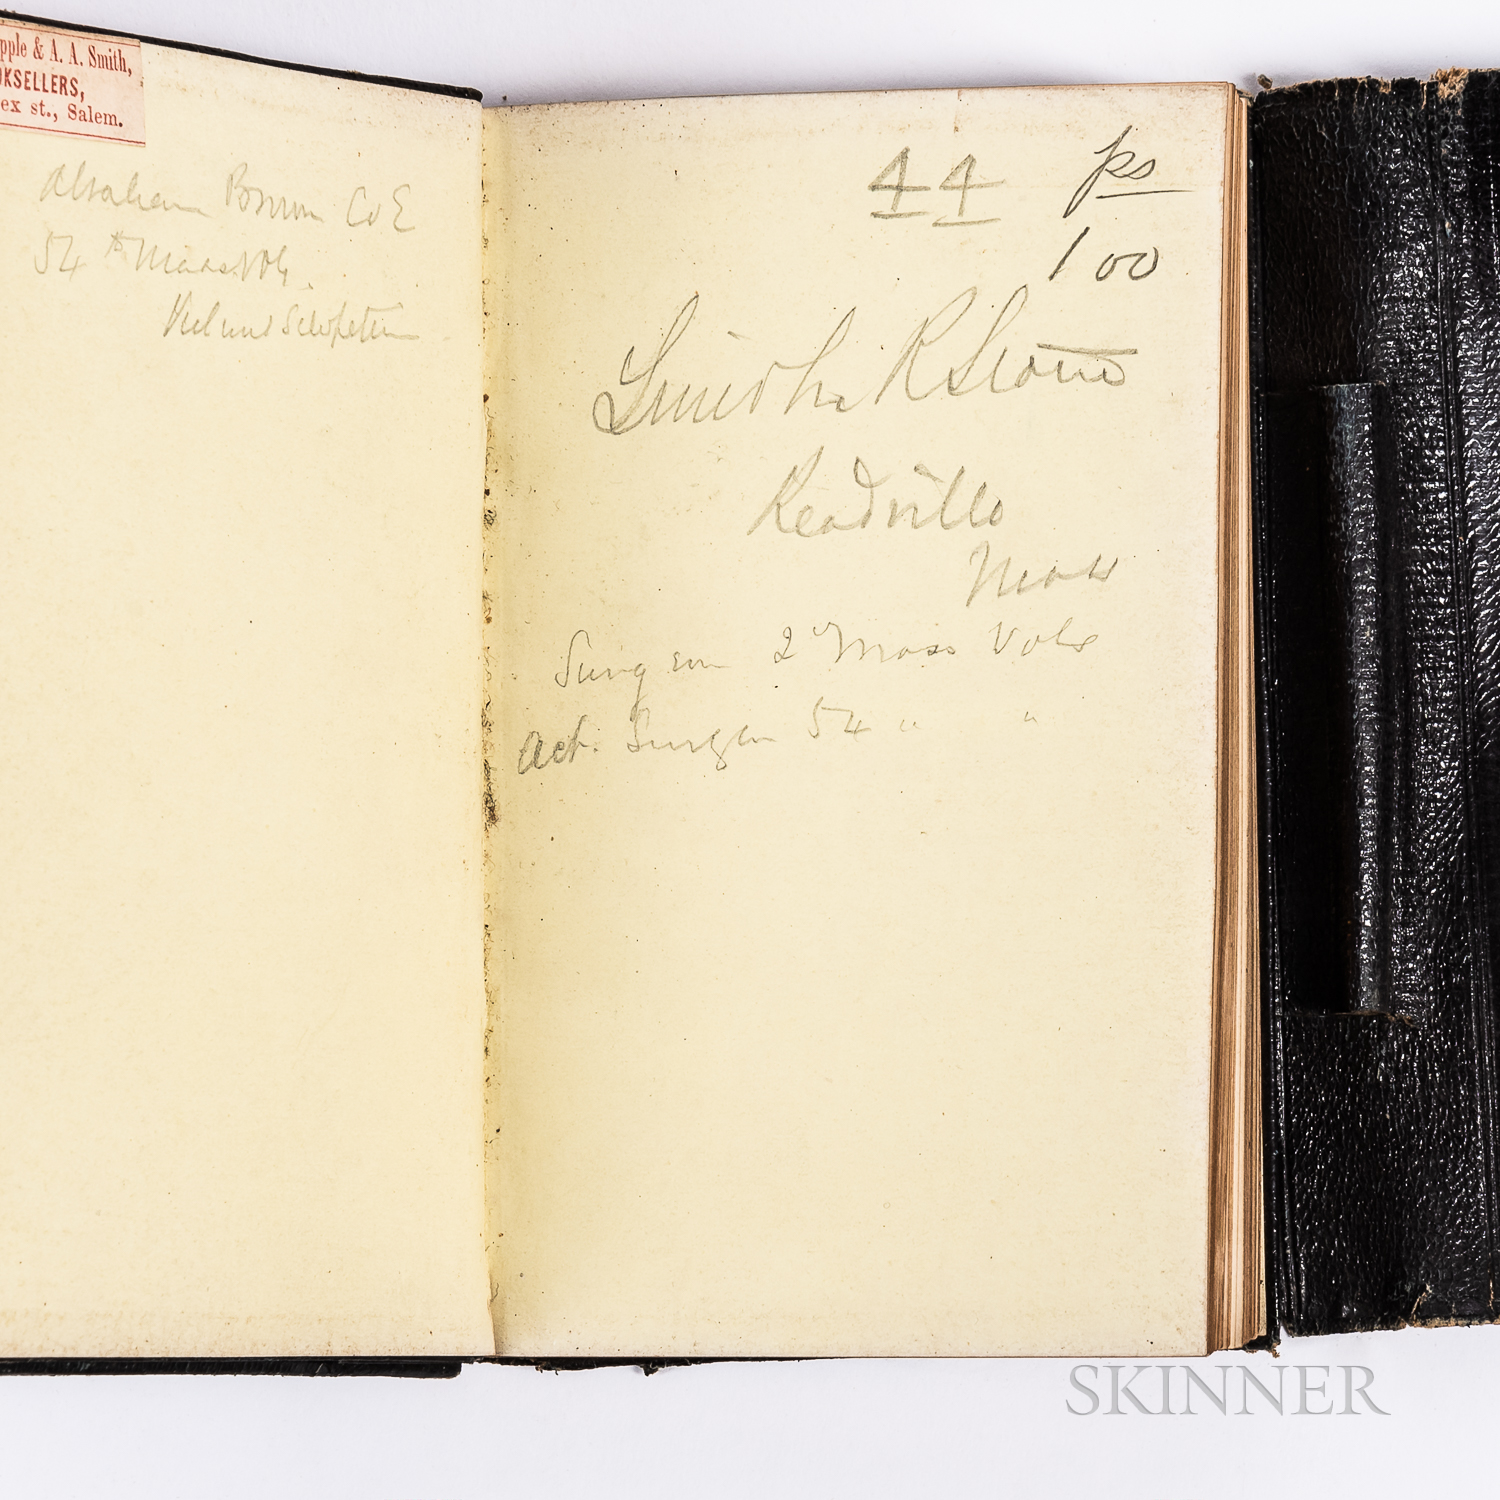 Lincoln Ripley Stone, Surgeon to the 54th Massachusetts Volunteer Infantry Regiment, 1863 Civil War Diary and Related Items.